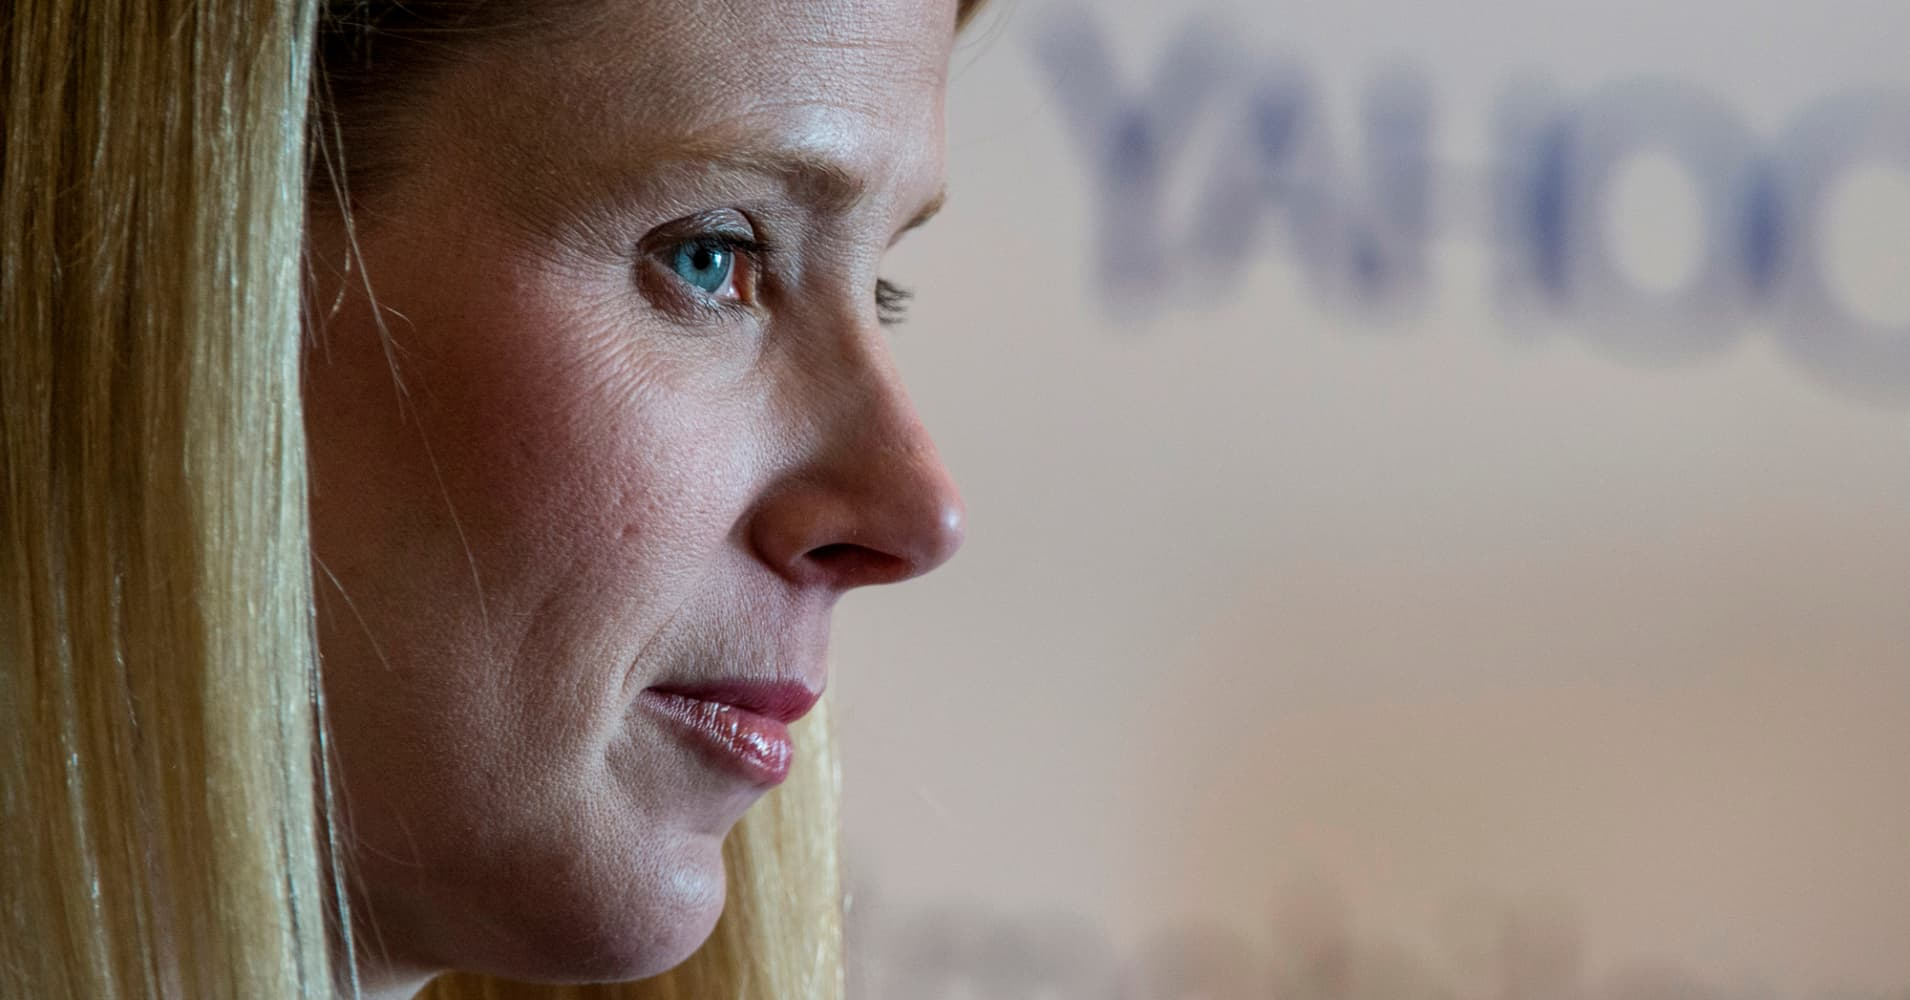 Yahoo's Marissa Mayer gives up annual equity, bonus due to breaches